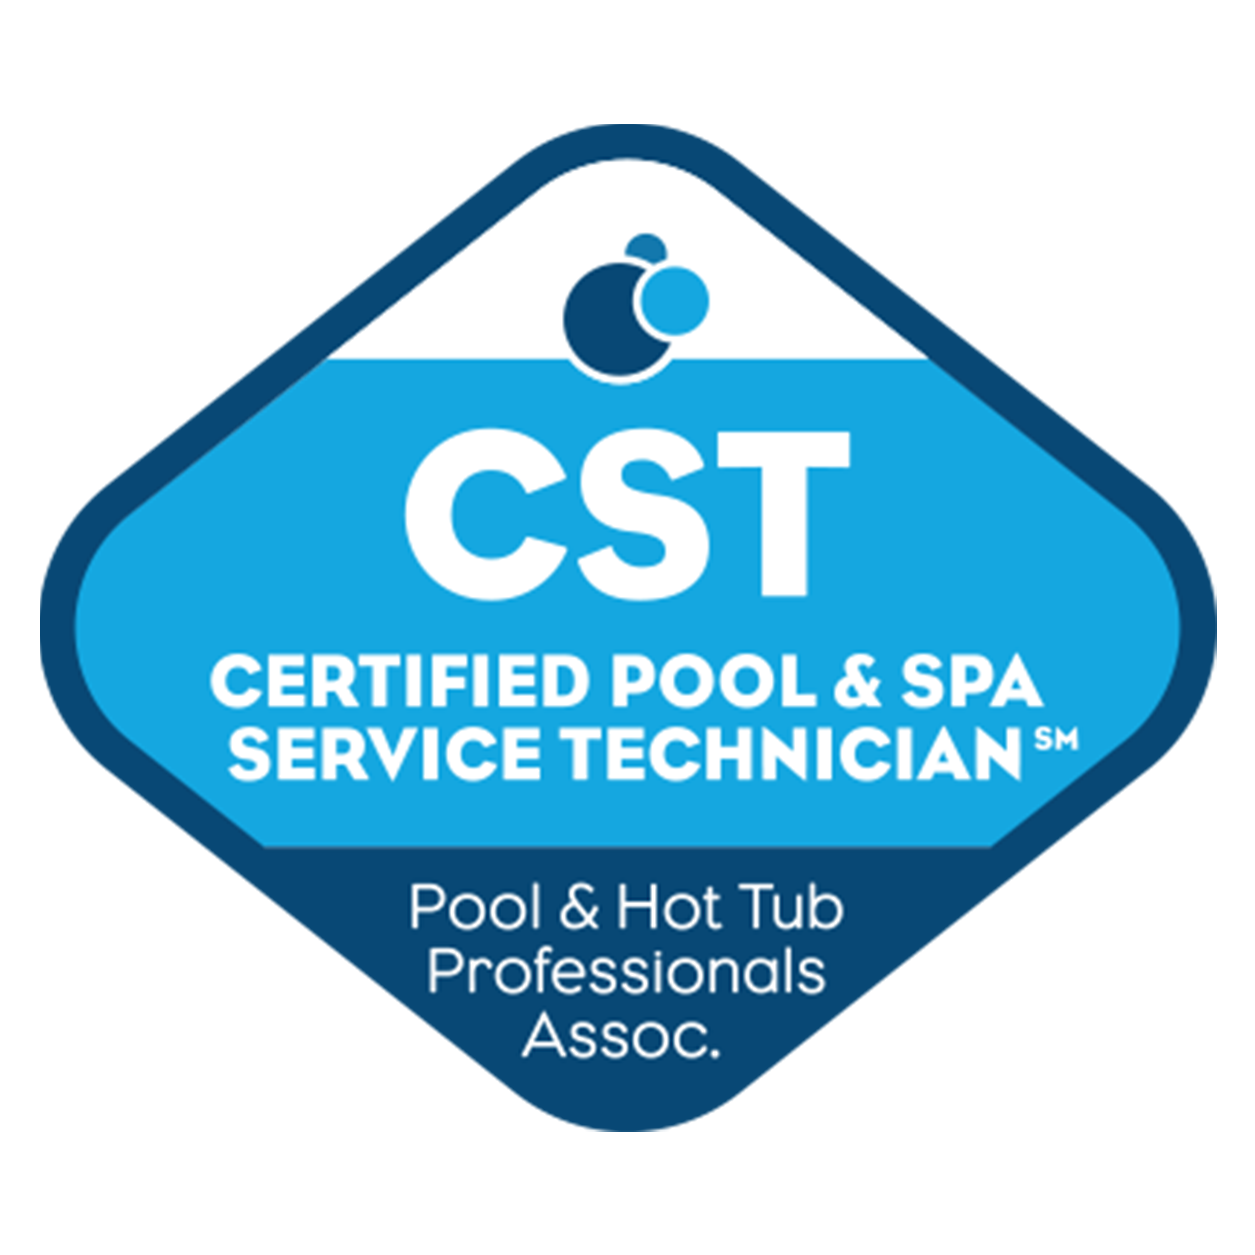 Certified Service Technician (CST) Course and Exam